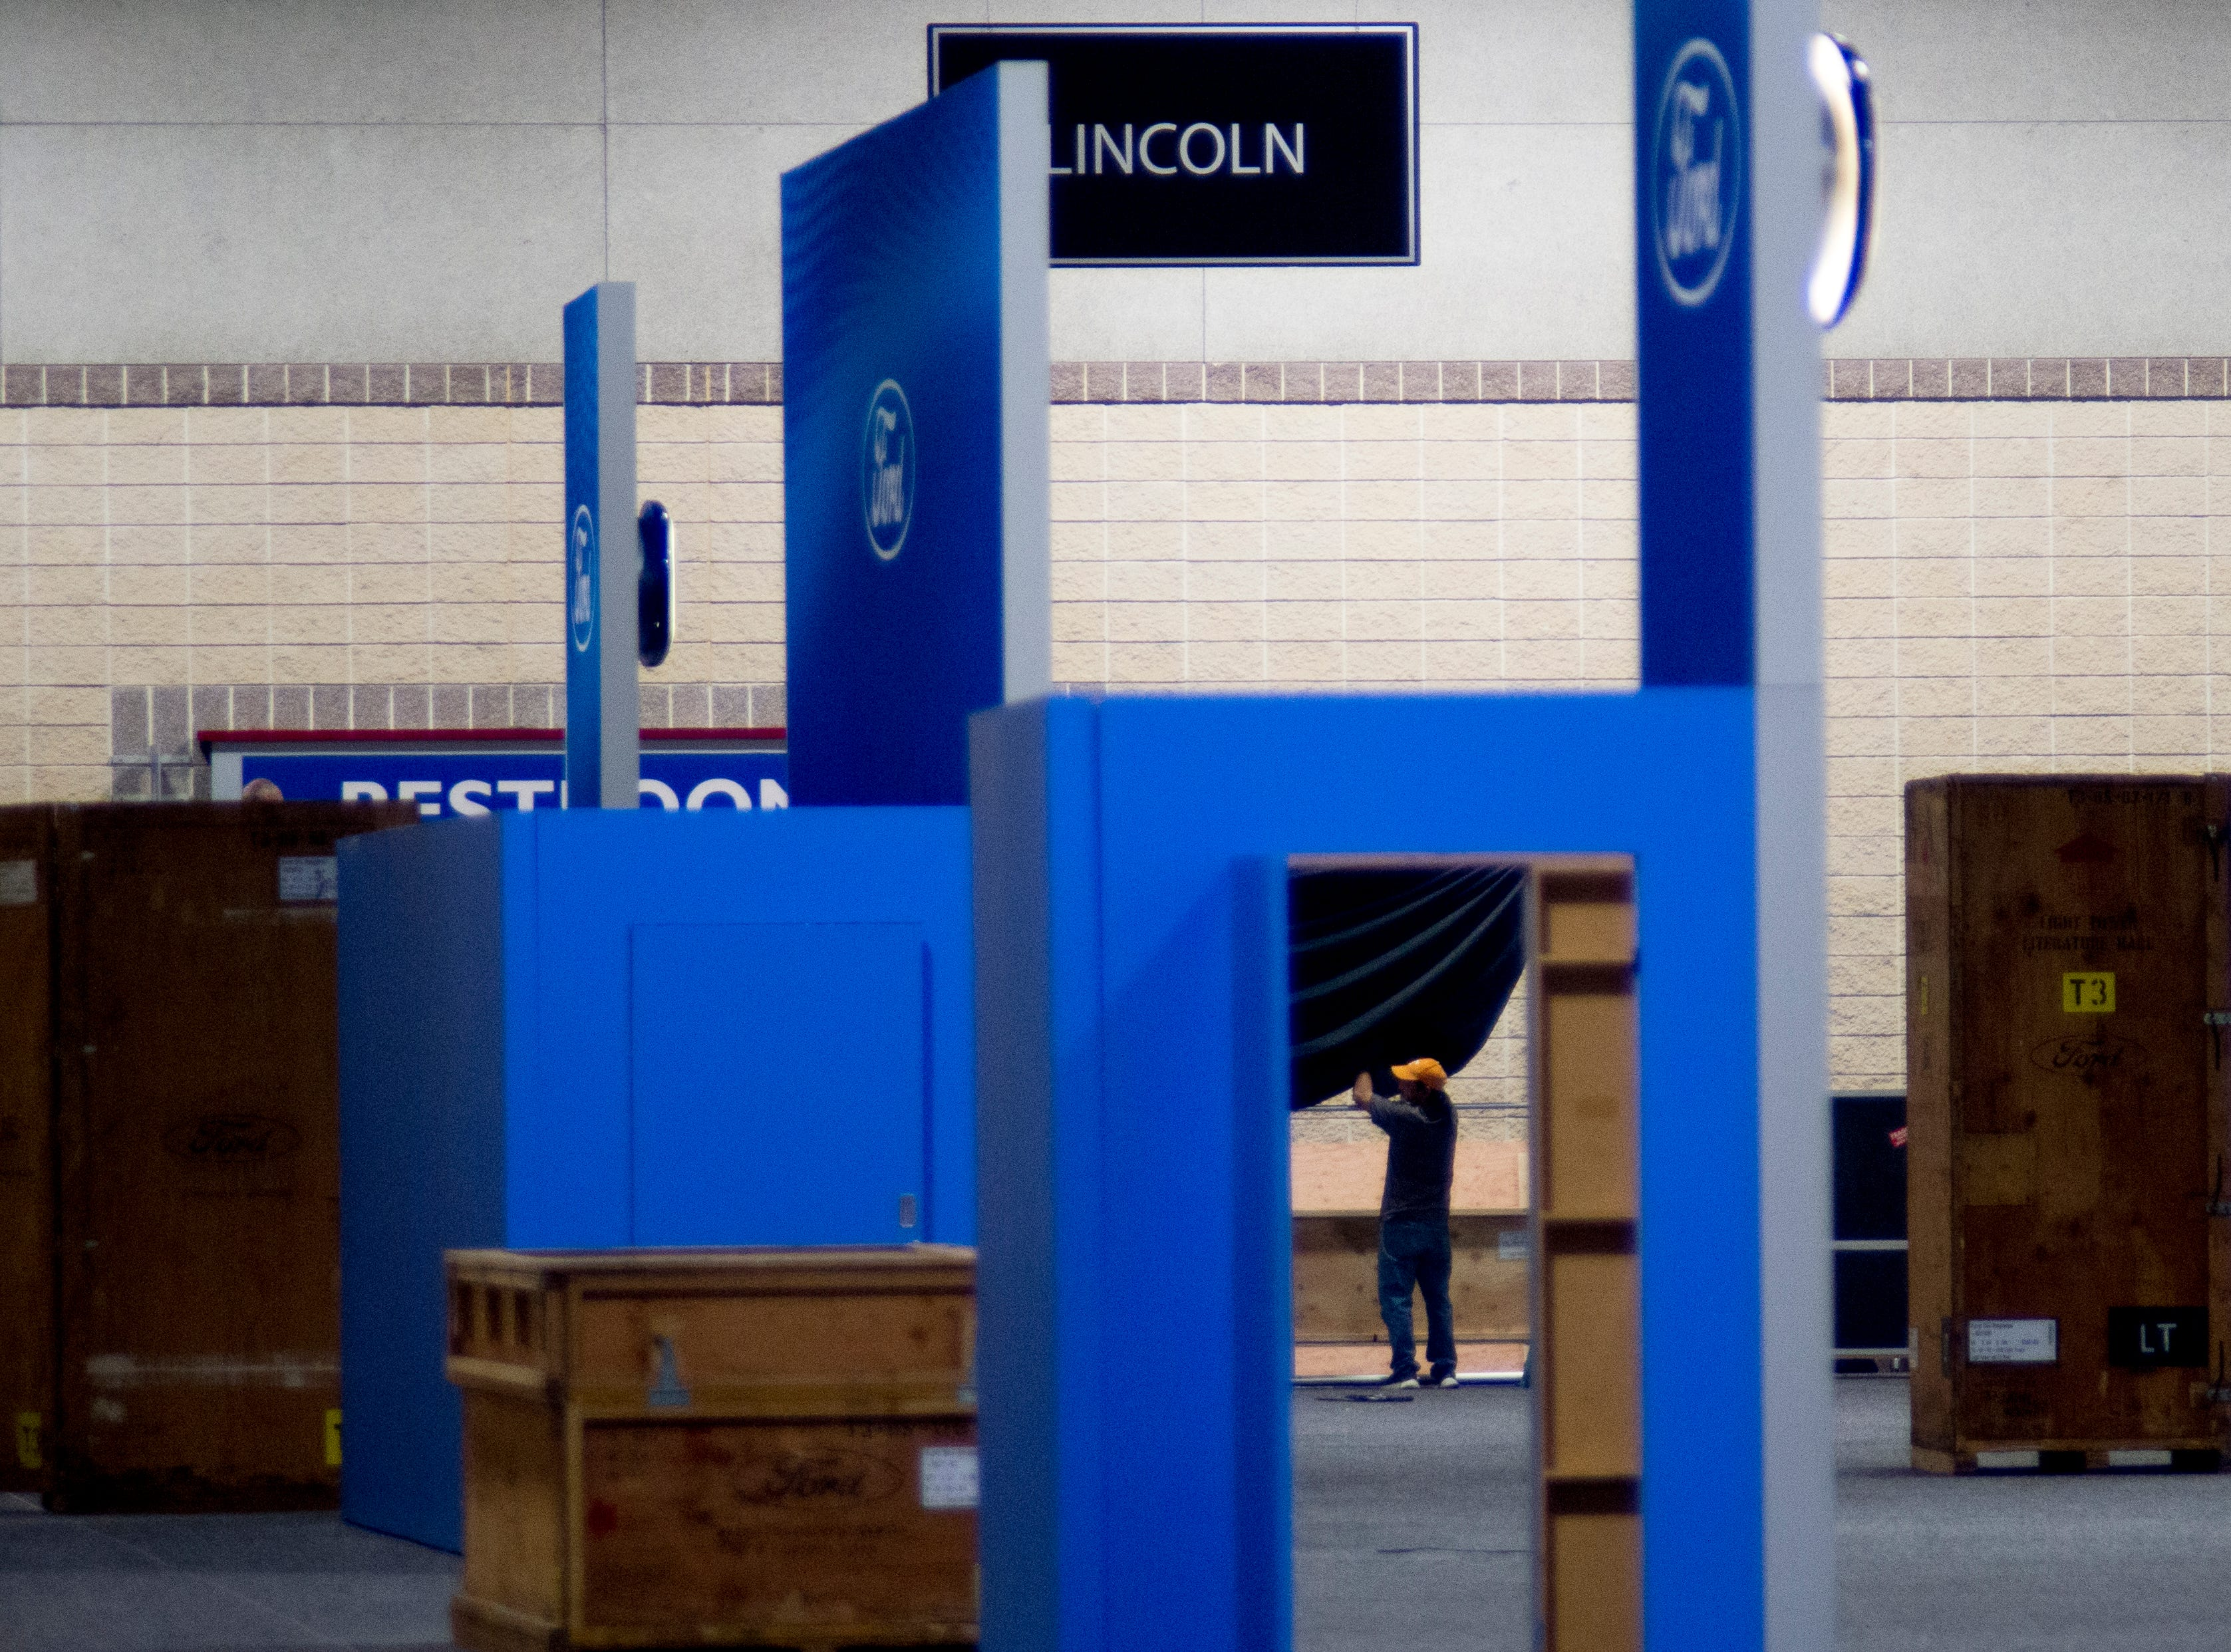 Workers set up a booth at the Knox News Auto Show in the Knoxville Convention Center in Knoxville, Tennessee on Wednesday, February 20, 2019.